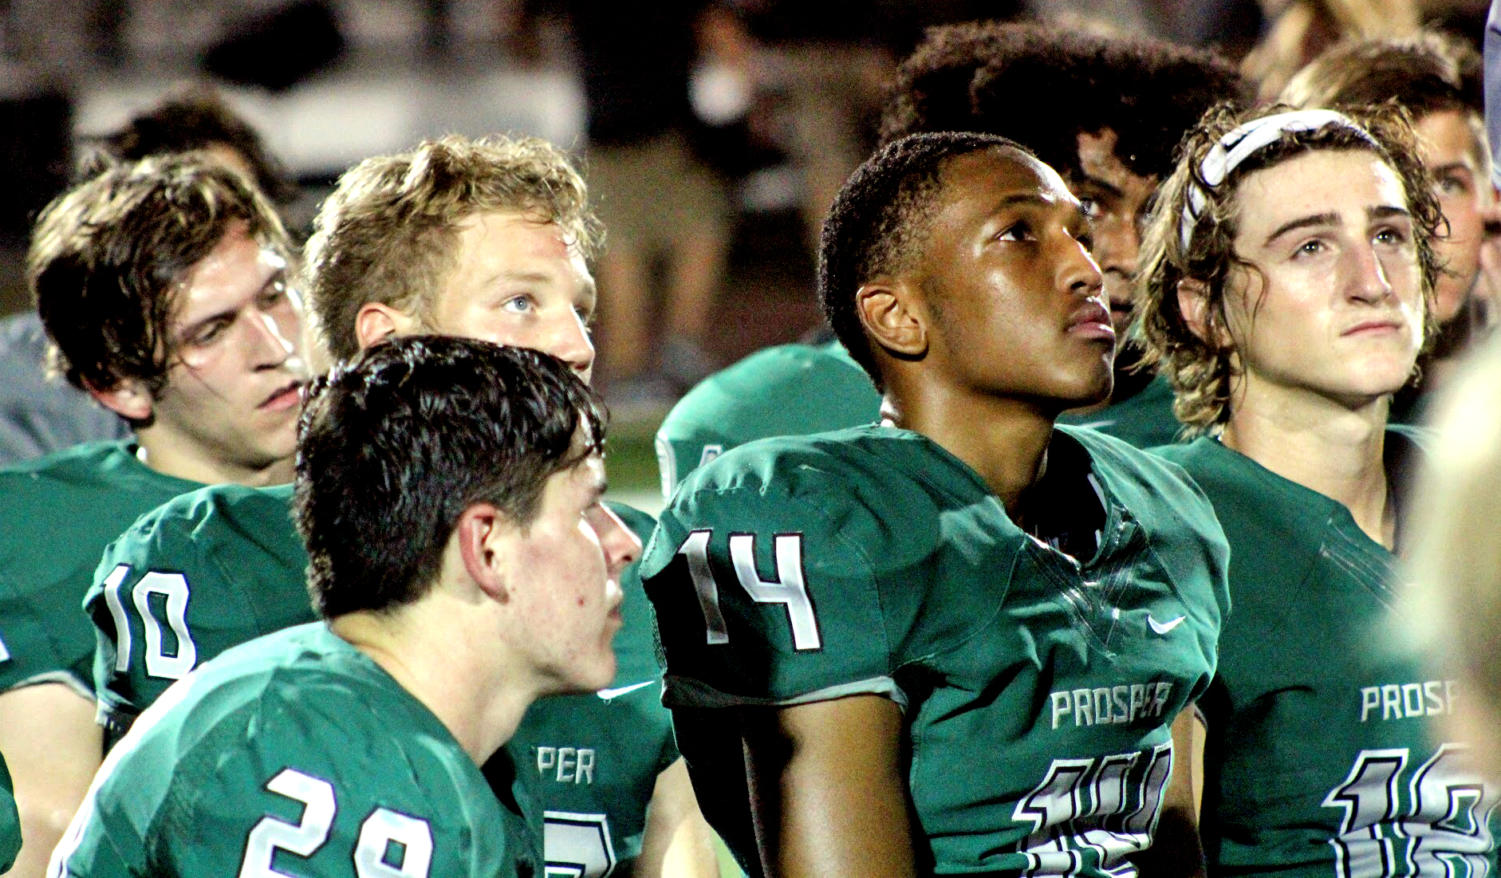 In the midst of the rest of the Eagles, Prosper players Reid Applewhite, No.  29, Lee Rowden, No. 10, Josh Graham, No. 14, and Caleb Cox, No. 10, reflect over the night as one of their coaches gives a recap after the end of the game. The boys played Eaton in this pre-season match-up. Head football coach Brandon Schmidt leads the Eagles.